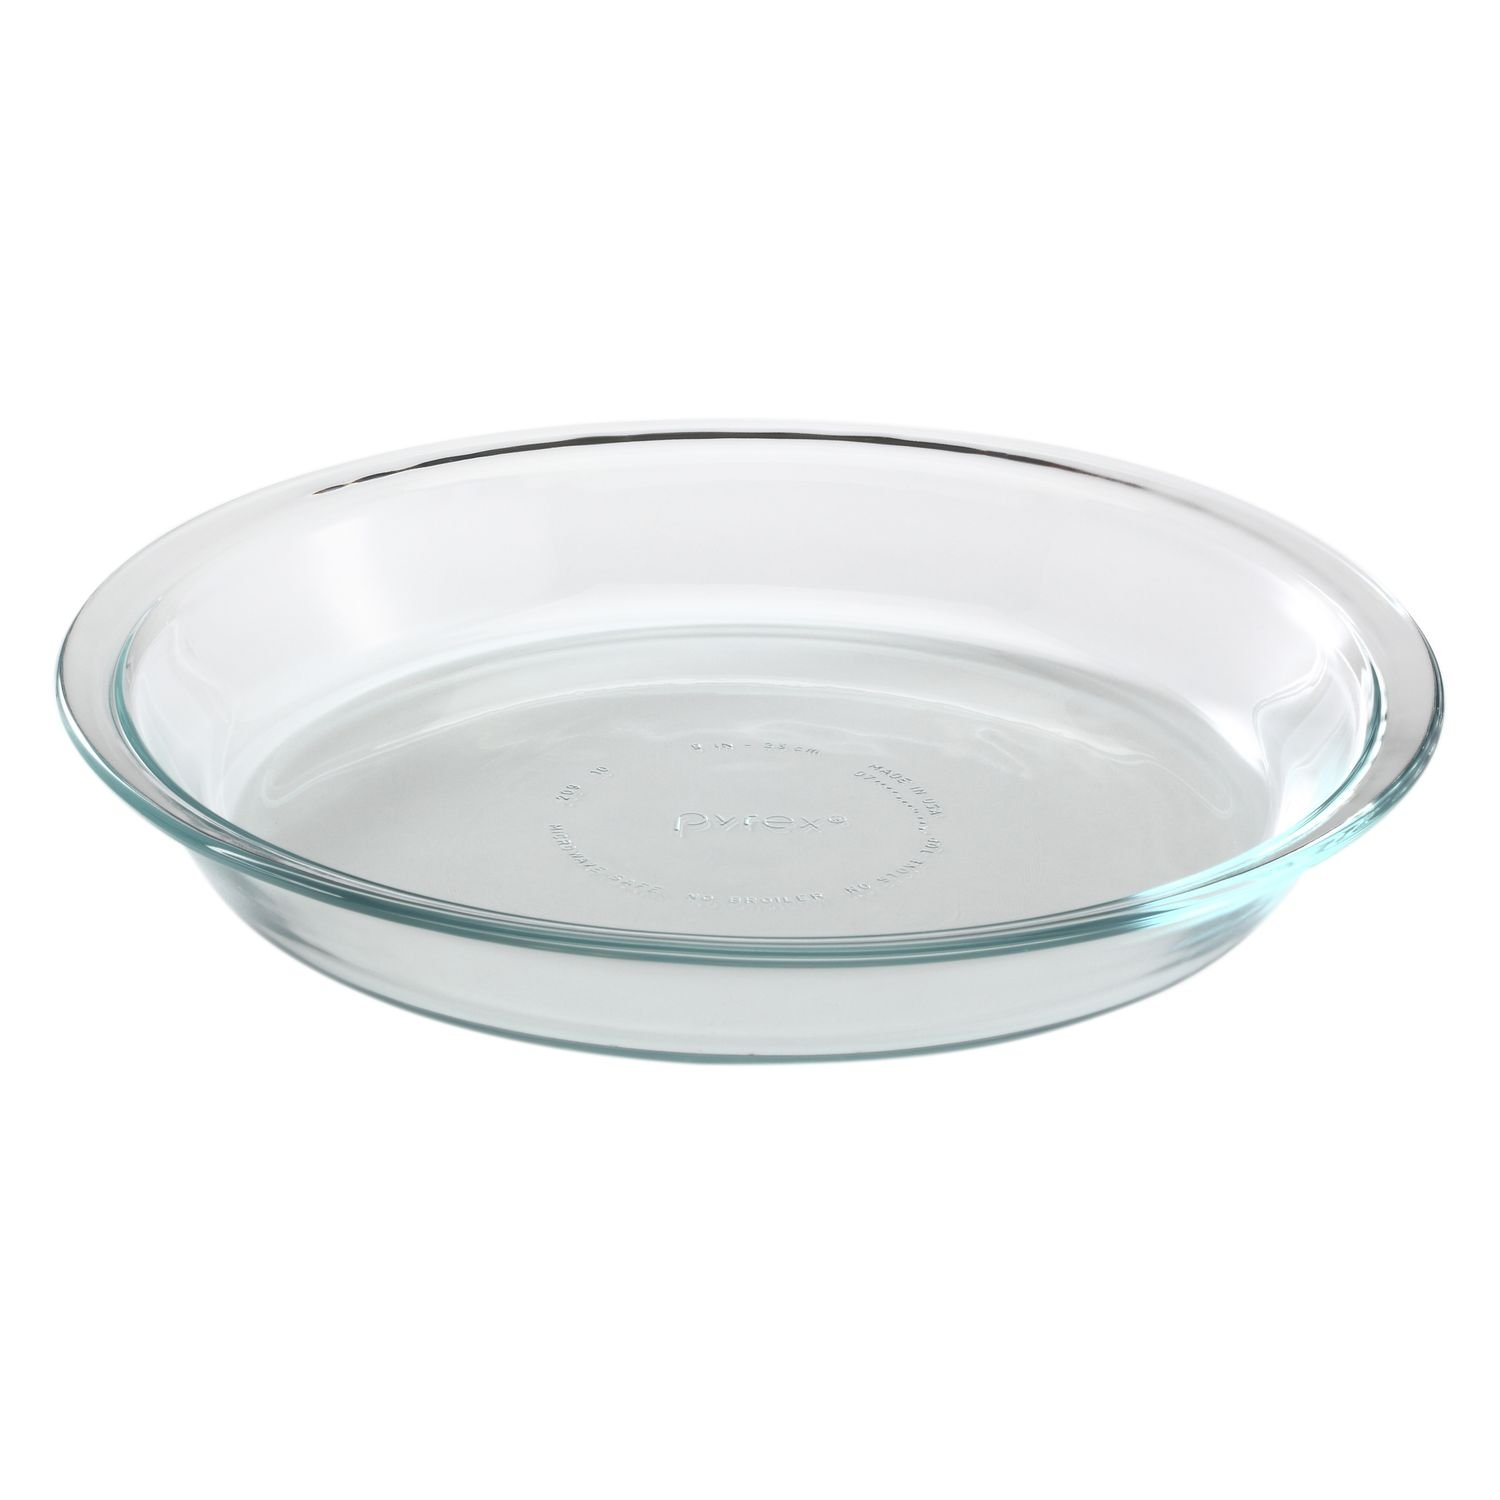 Pyrex Glass Bakeware Pie Plate 9'' x 1.2'' (Pack of 12)